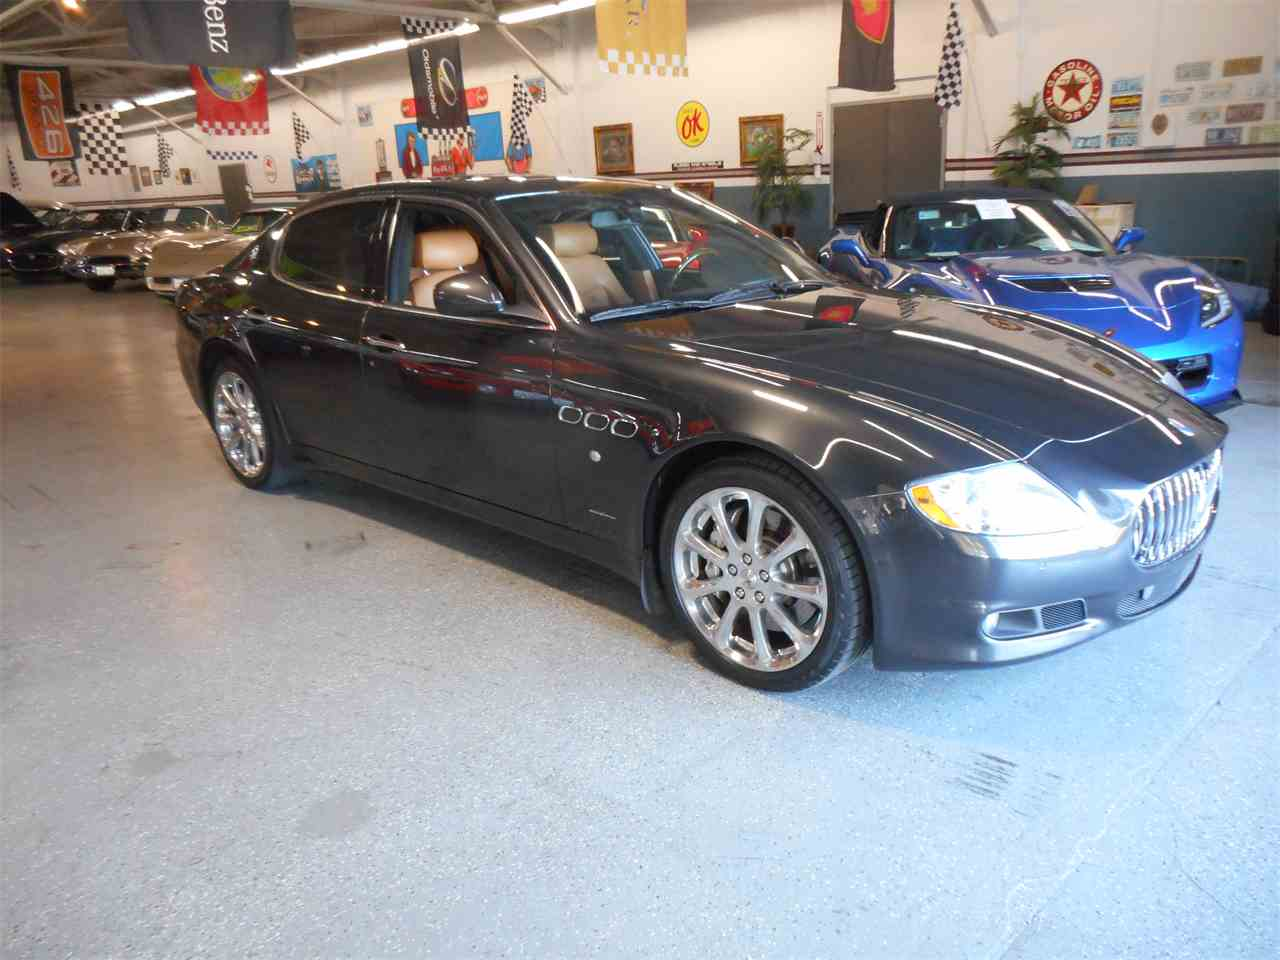 Large Picture of 2009 Maserati Quattroporte located in California - $39,900.00 Offered by Checkered Flag Classic Inc. - MAAV